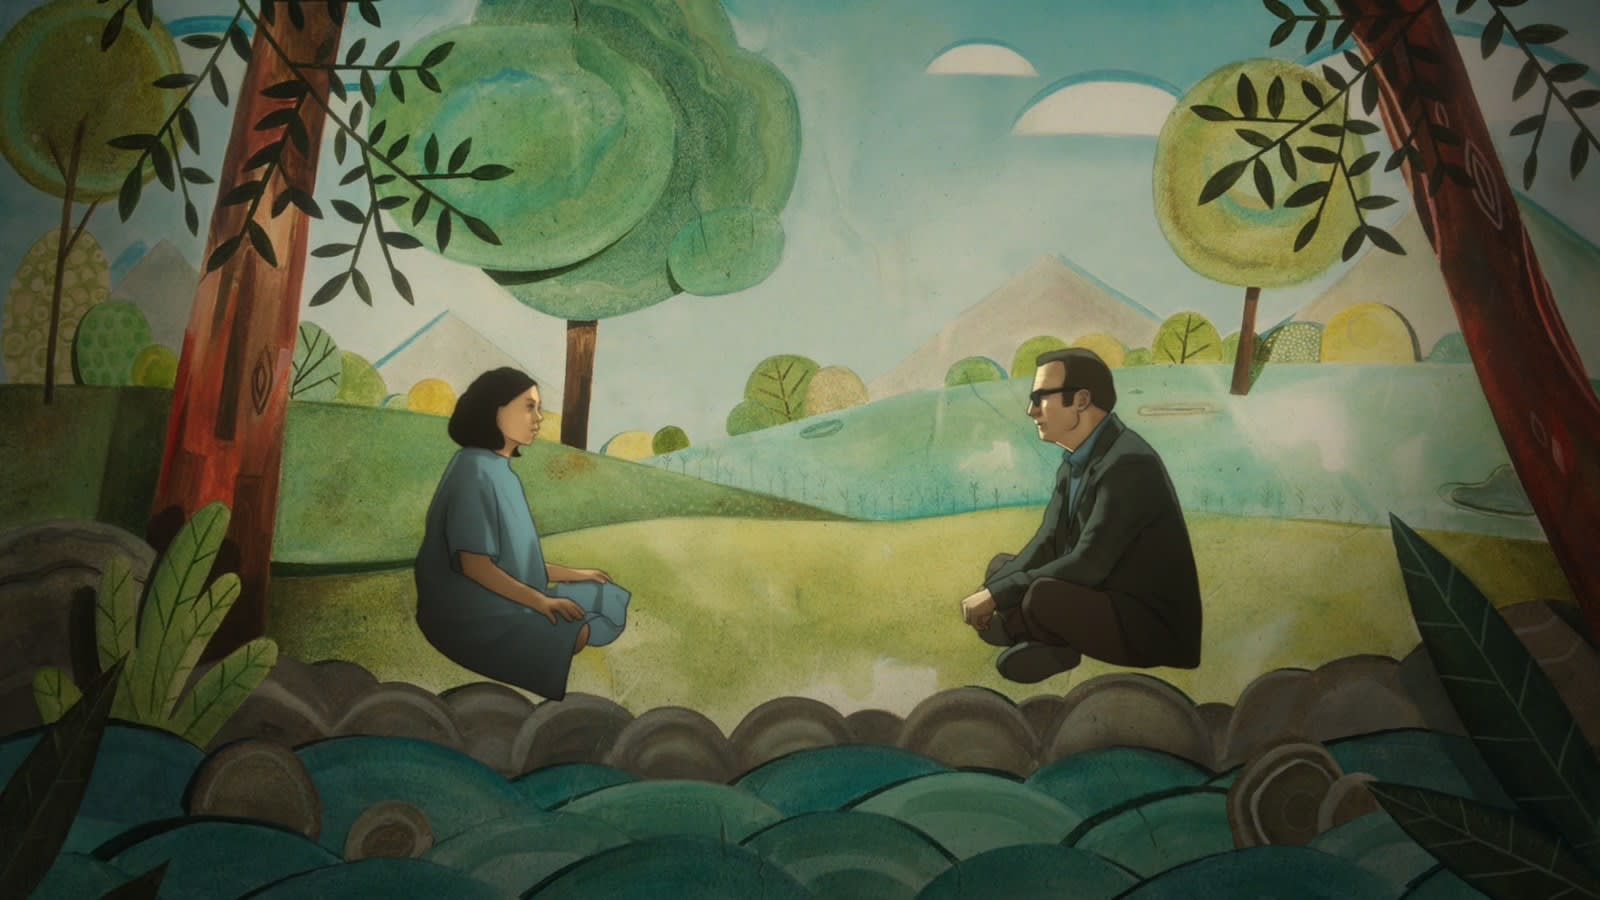 A woman in a hospital gown is sitting across from her father. They are surrounded by an animated background of trees and the sky.